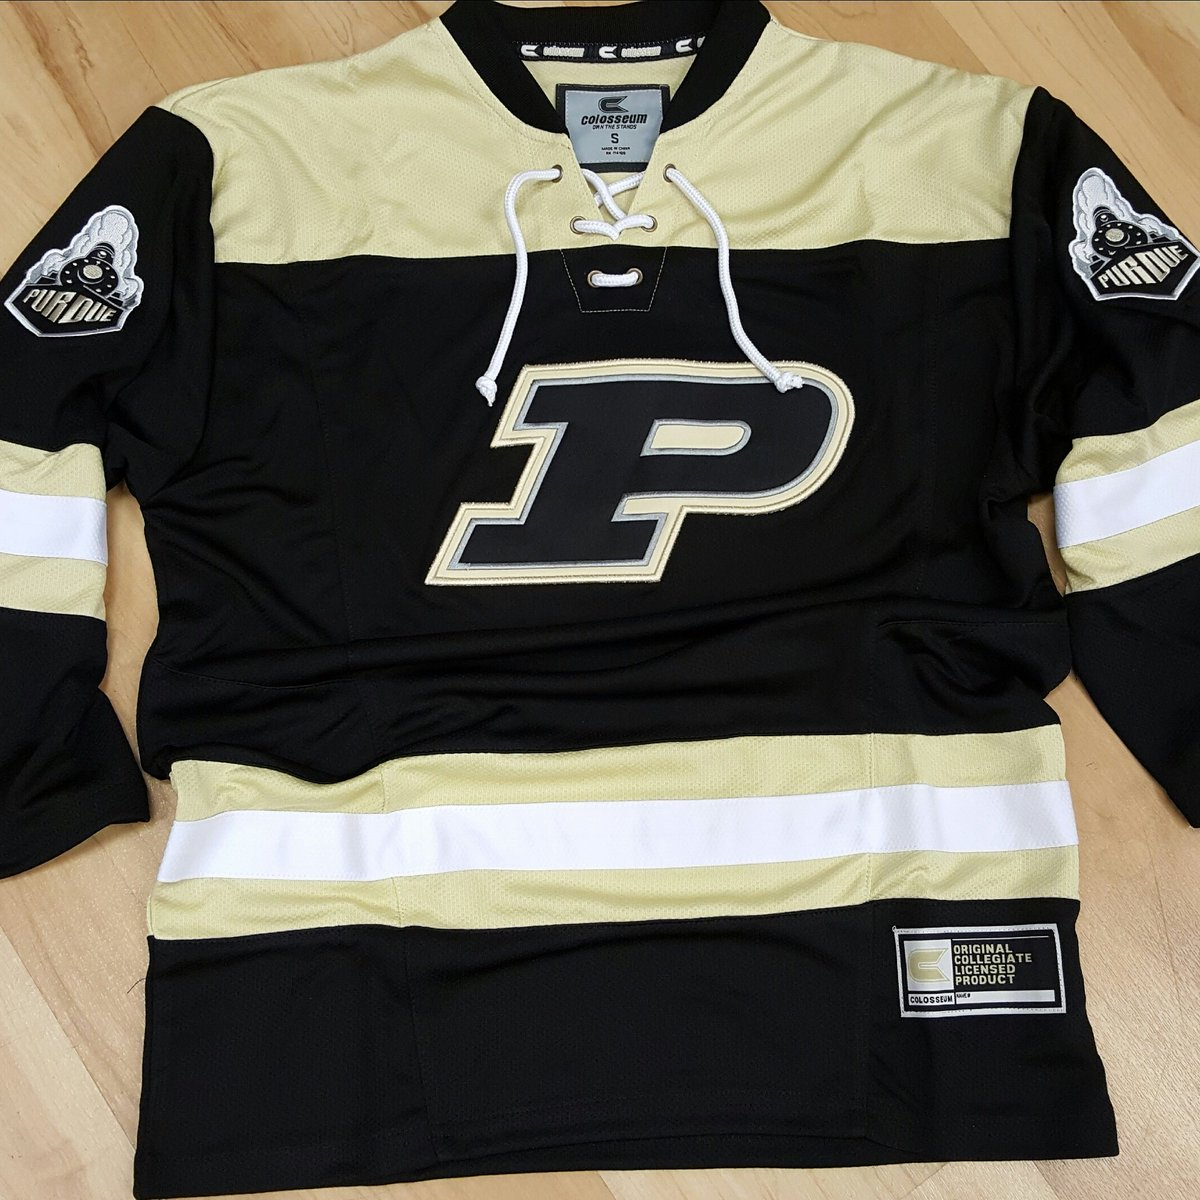 university bookstore on twitter this new purdue hockey jersey is lit get yours at our main store location across from the union